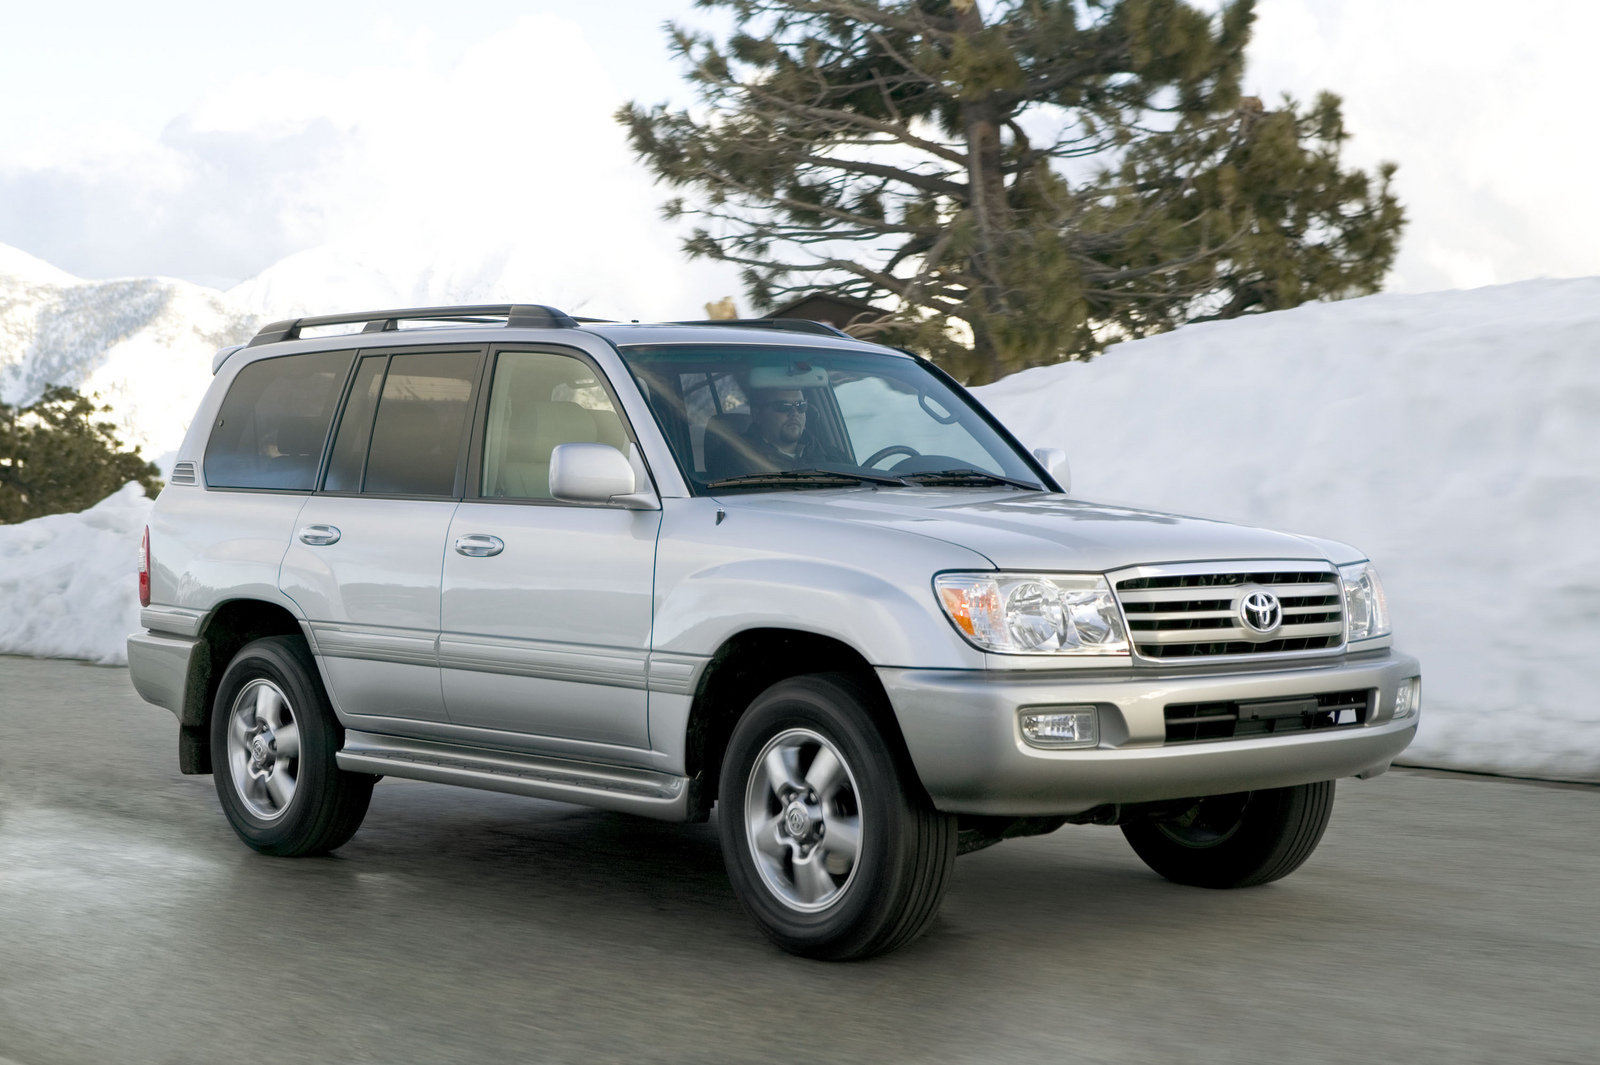 2006 toyota land cruiser picture 94393 car review. Black Bedroom Furniture Sets. Home Design Ideas